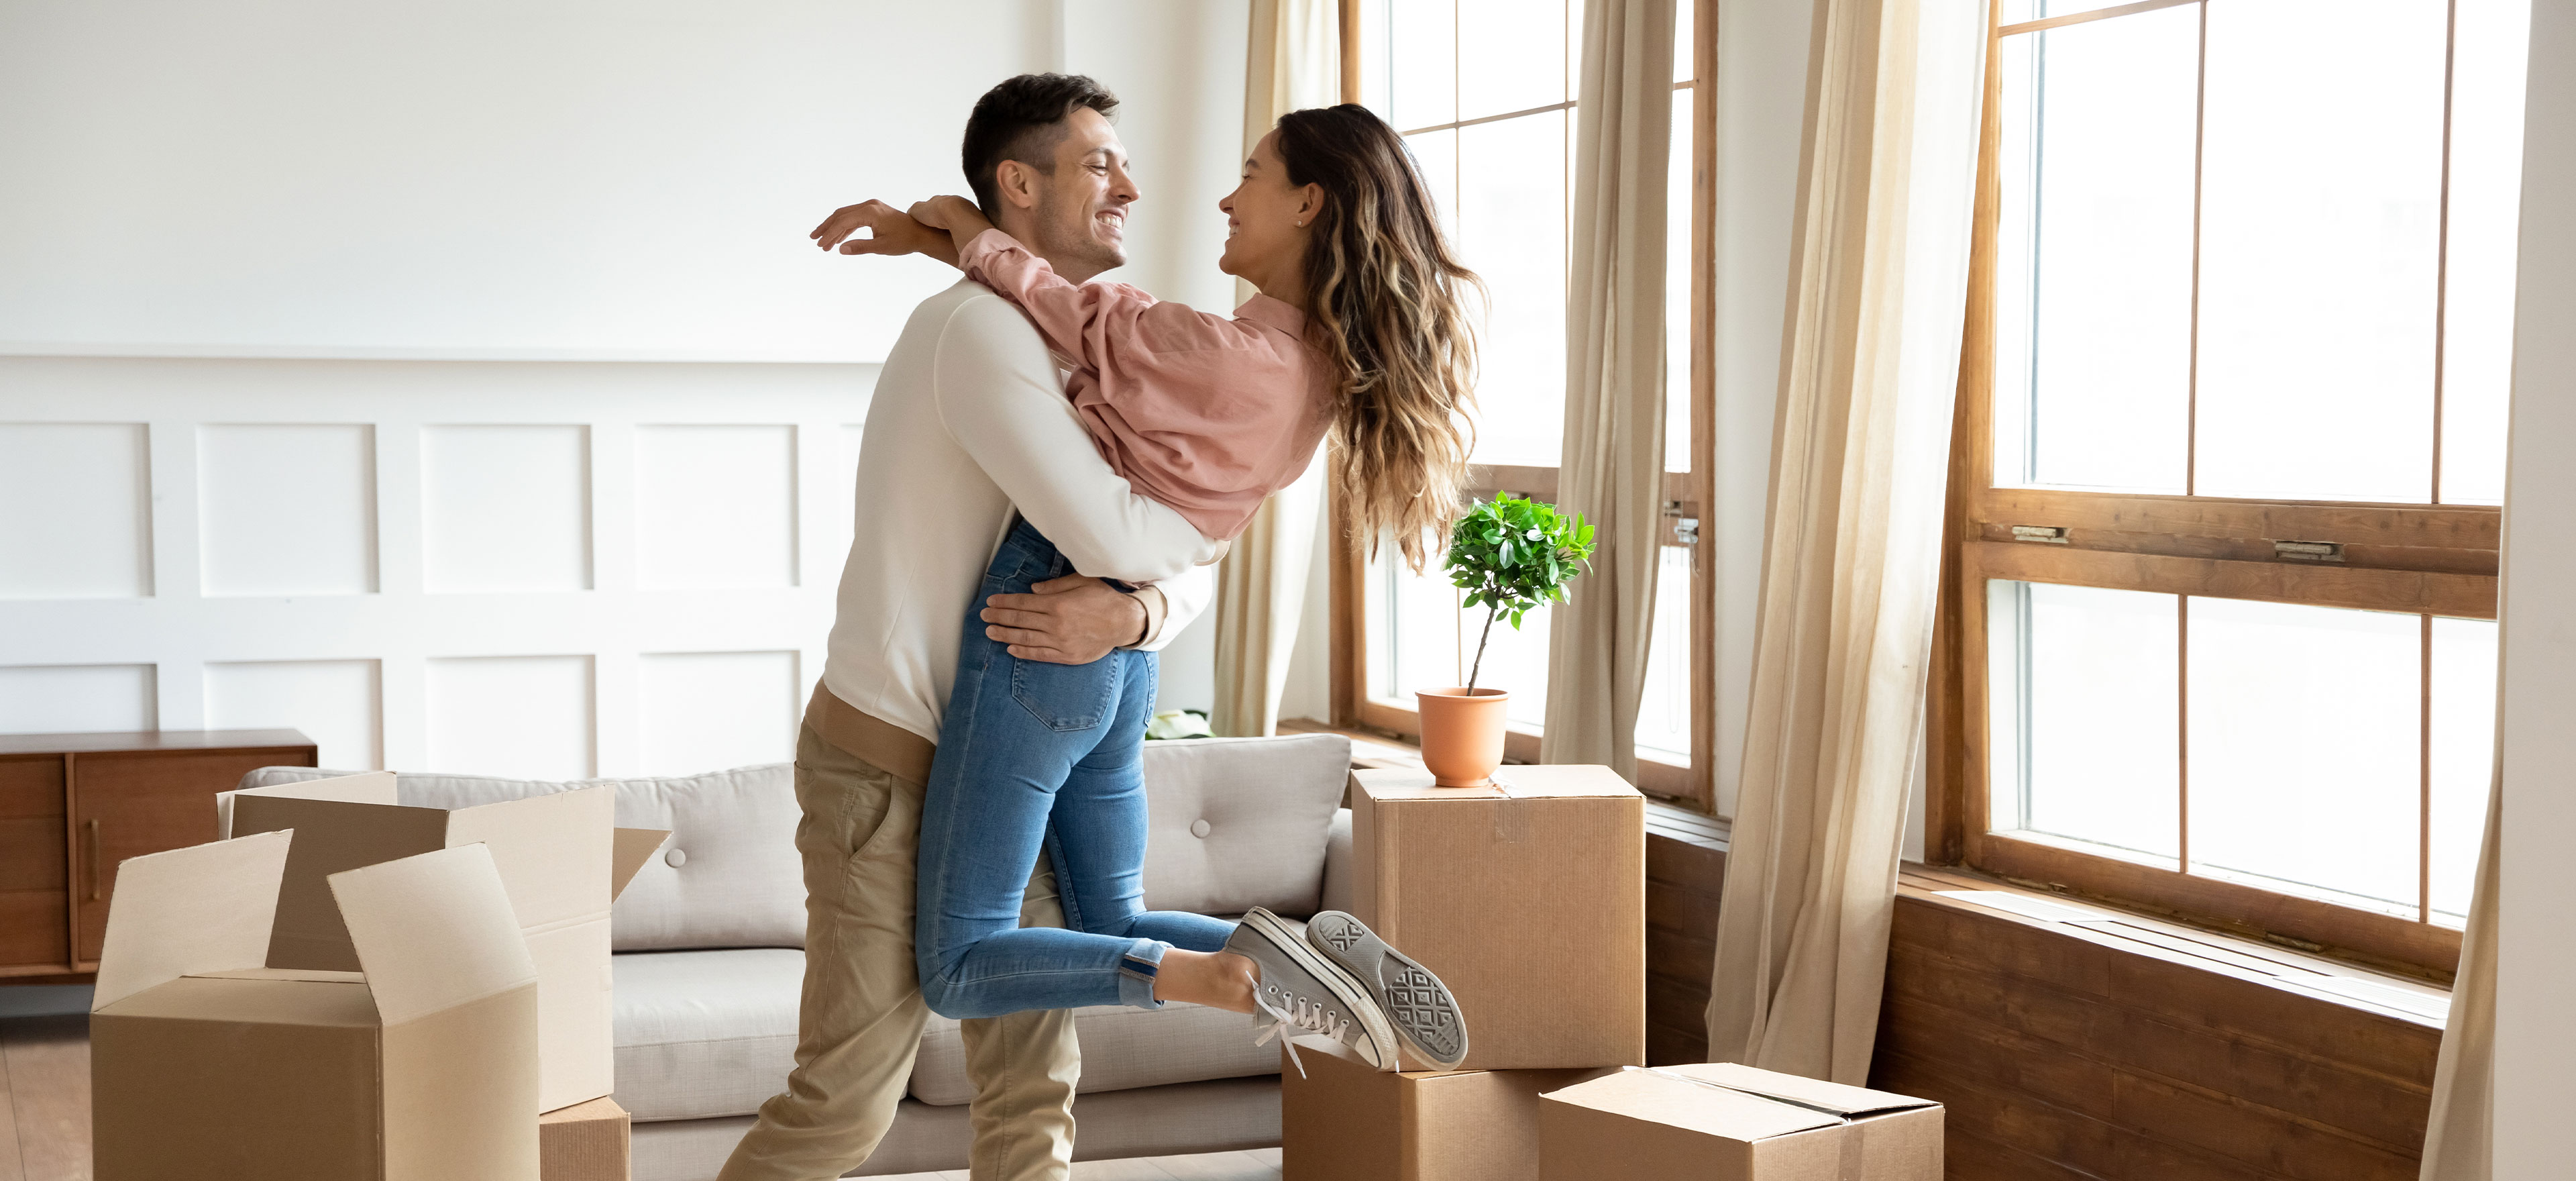 weeks-new-build-homes-adelaide-first-home-buyers